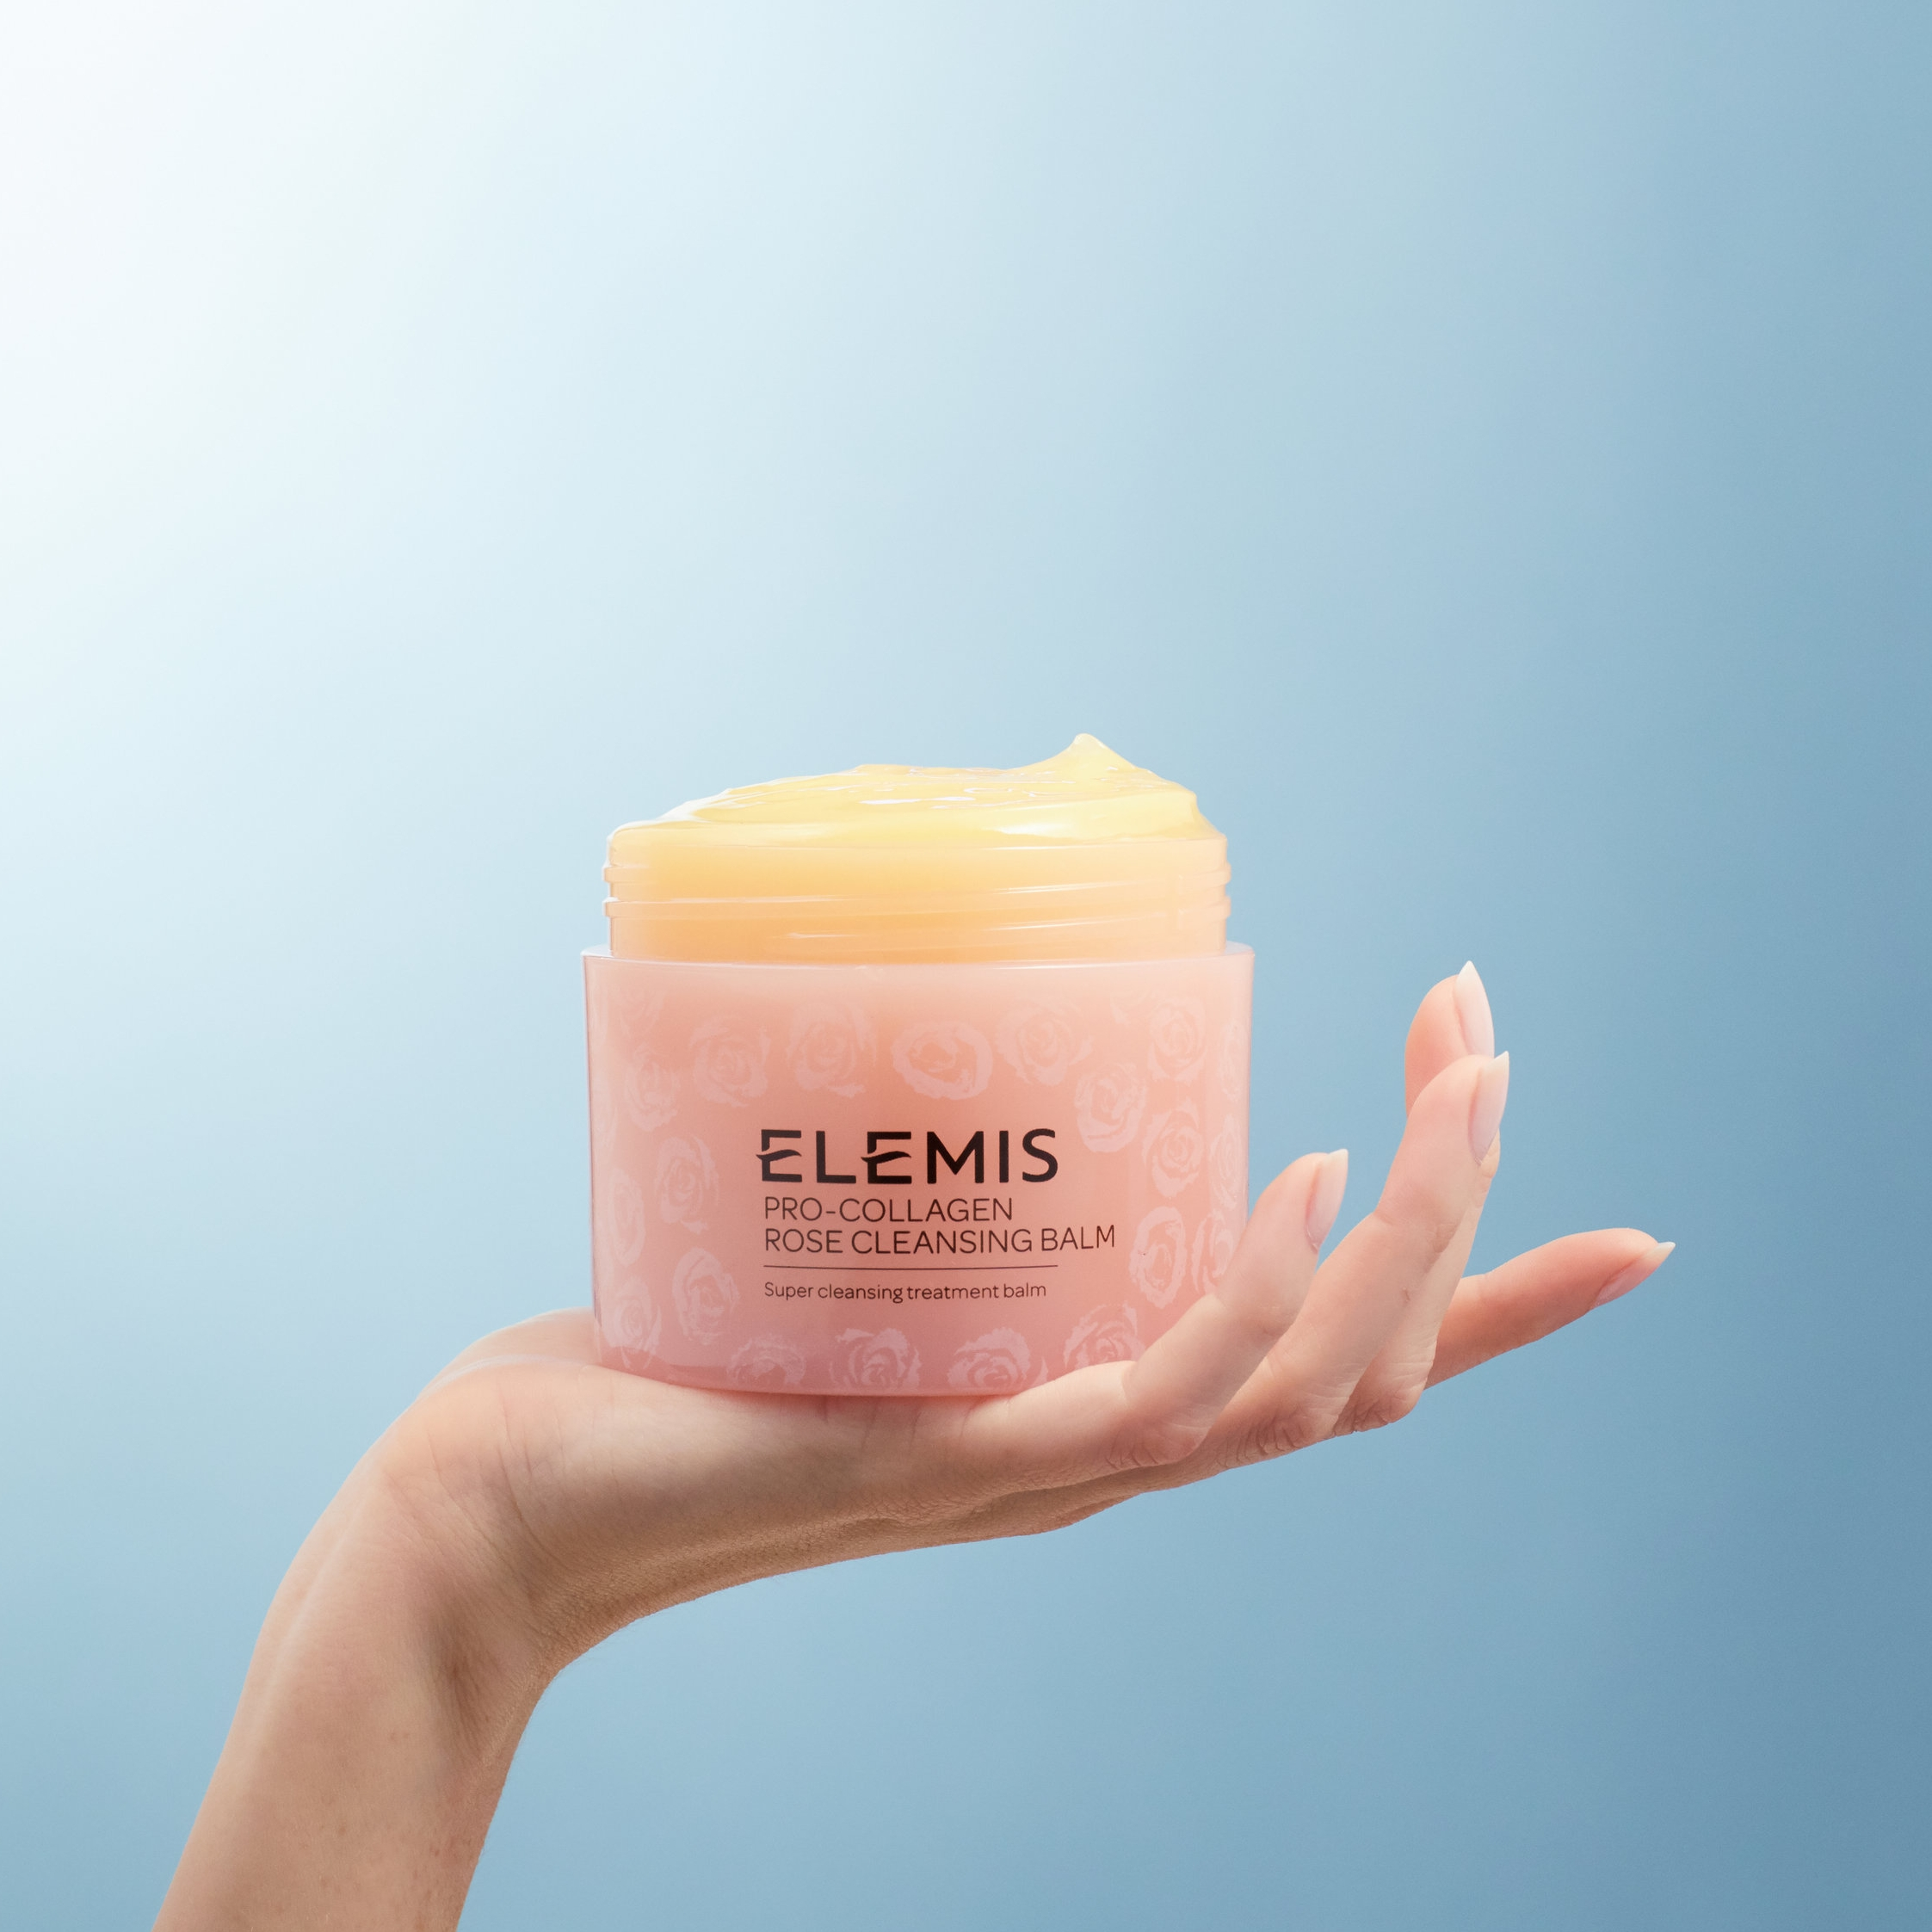 180515_Elemis_06Shot_ProCollagenRoseCleansingBalm100mL_Interior_008_RT.jpg